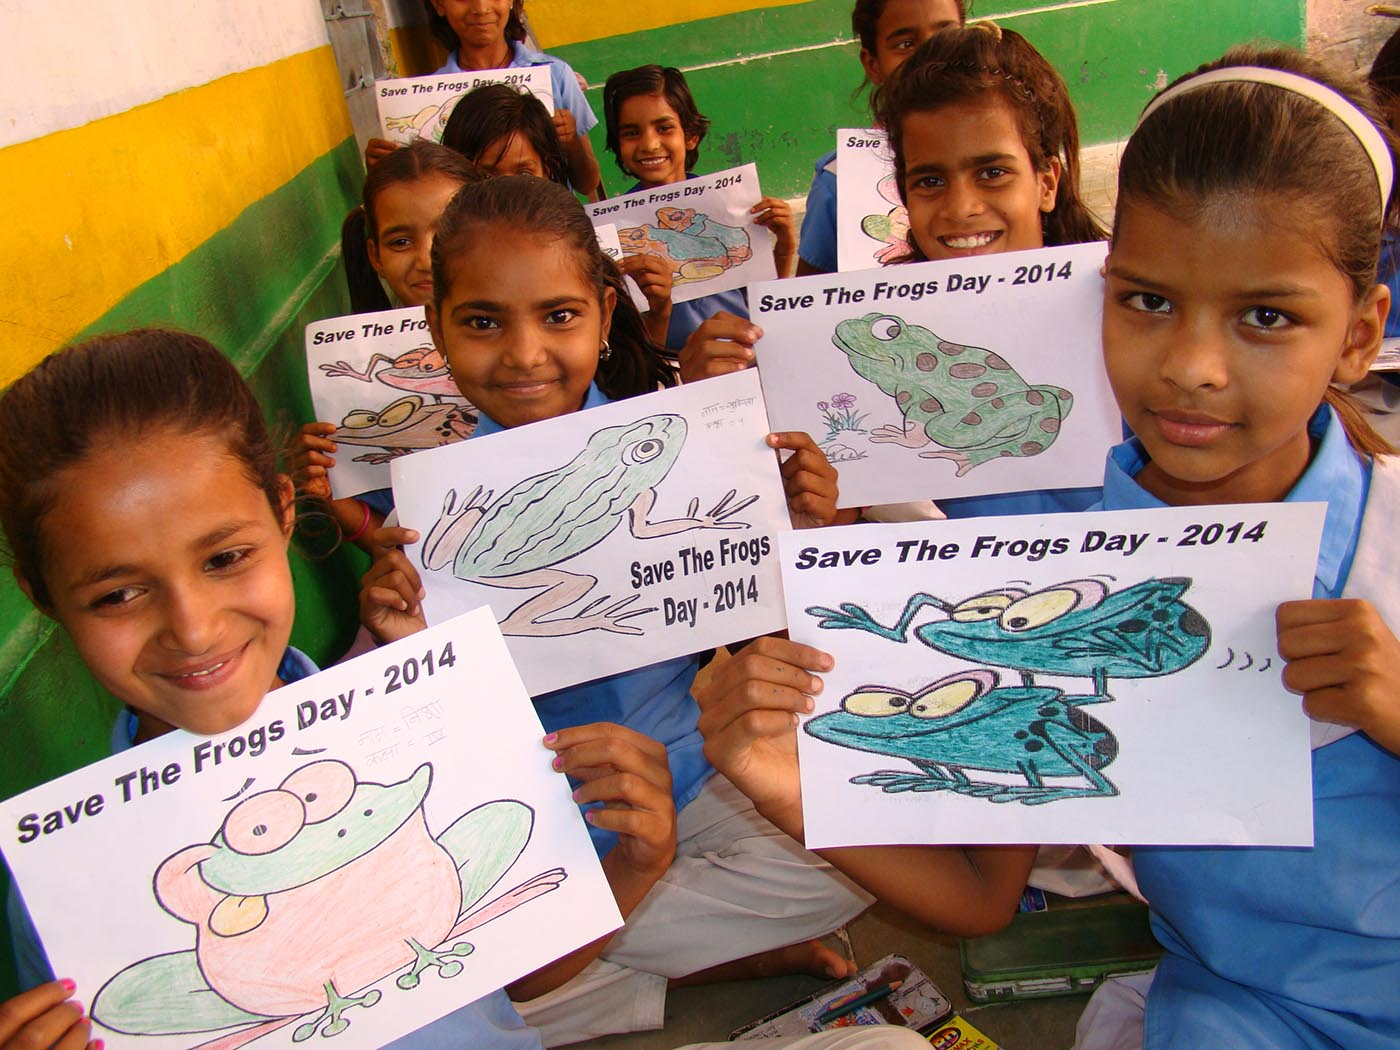 India-Rajasthan-2014-save-the-frogs-day